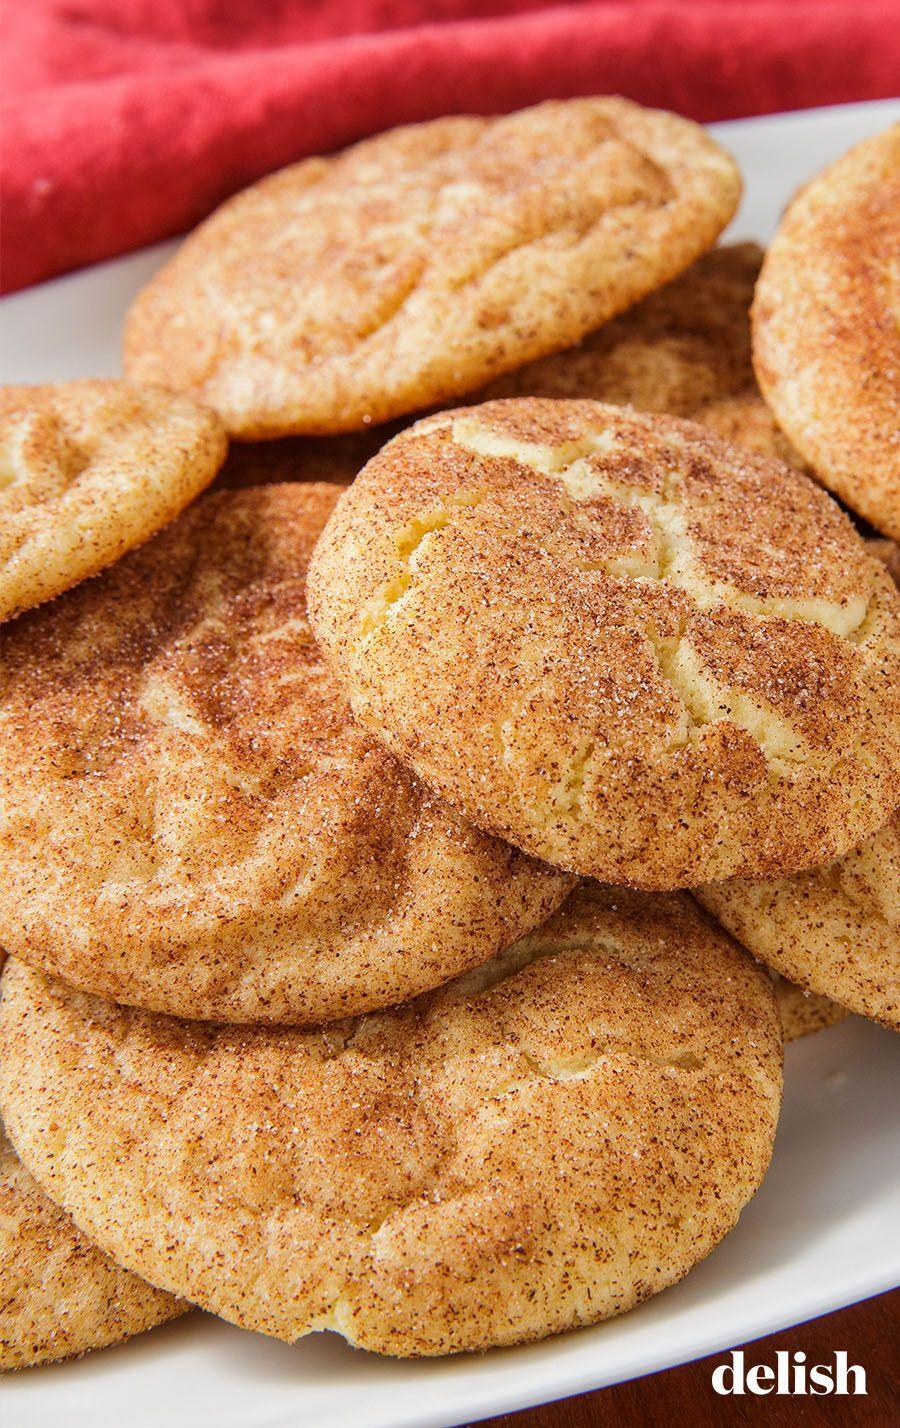 """<p>Everyone needs a good <a href=""""https://www.delish.com/cooking/recipe-ideas/g4172/snickerdoodle-recipes/"""" rel=""""nofollow noopener"""" target=""""_blank"""" data-ylk=""""slk:snickerdoodle"""" class=""""link rapid-noclick-resp"""">snickerdoodle</a> recipe in their repertoire. THIS IS IT. </p><p>Get the recipe from <a href=""""https://www.delish.com/cooking/recipe-ideas/a22004581/easy-snickerdoodle-cookie-recipe/"""" rel=""""nofollow noopener"""" target=""""_blank"""" data-ylk=""""slk:Delish"""" class=""""link rapid-noclick-resp"""">Delish</a>.</p>"""